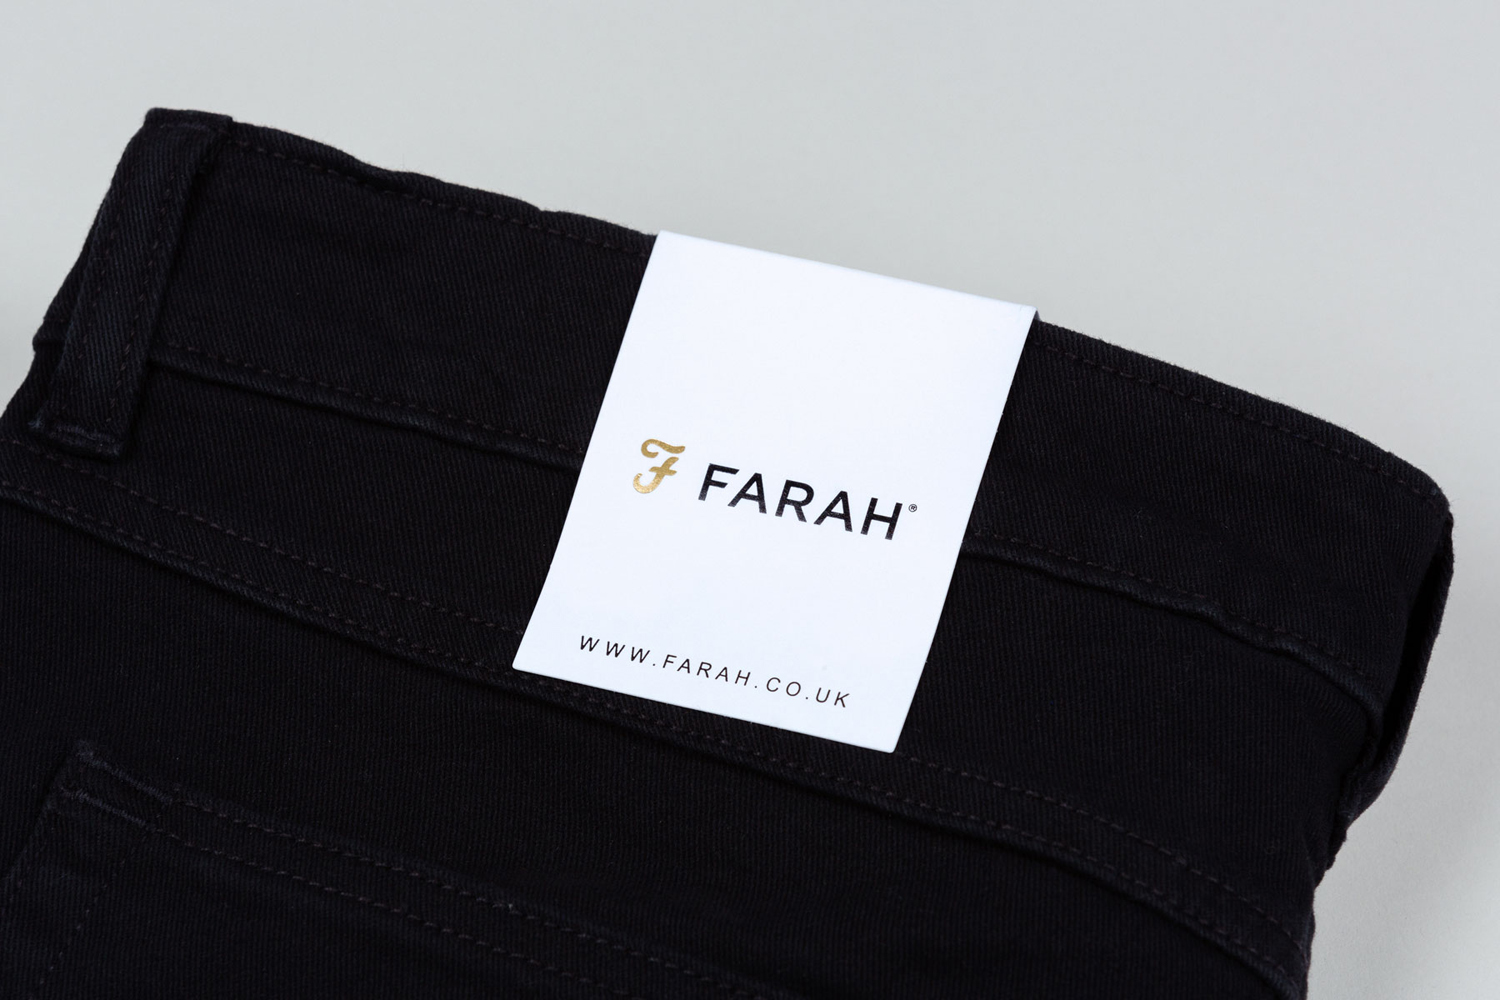 Brand identity and clothing tag for UK men's fashion brand Farah by graphic design studio Post